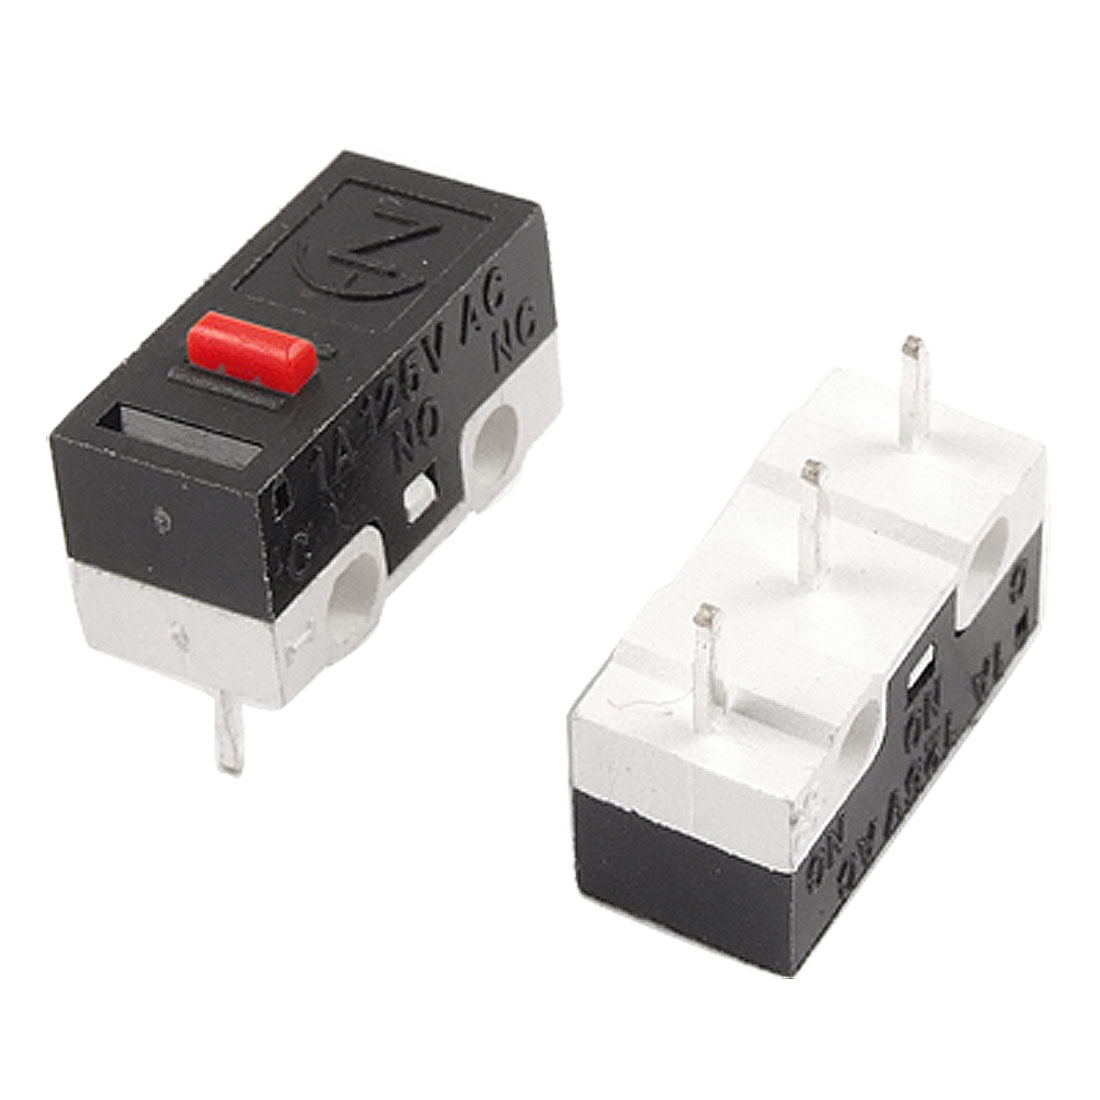 5 x SPDT 1NO 1NC Momentary Push Button Mini Micro Switches AC 125V 1A